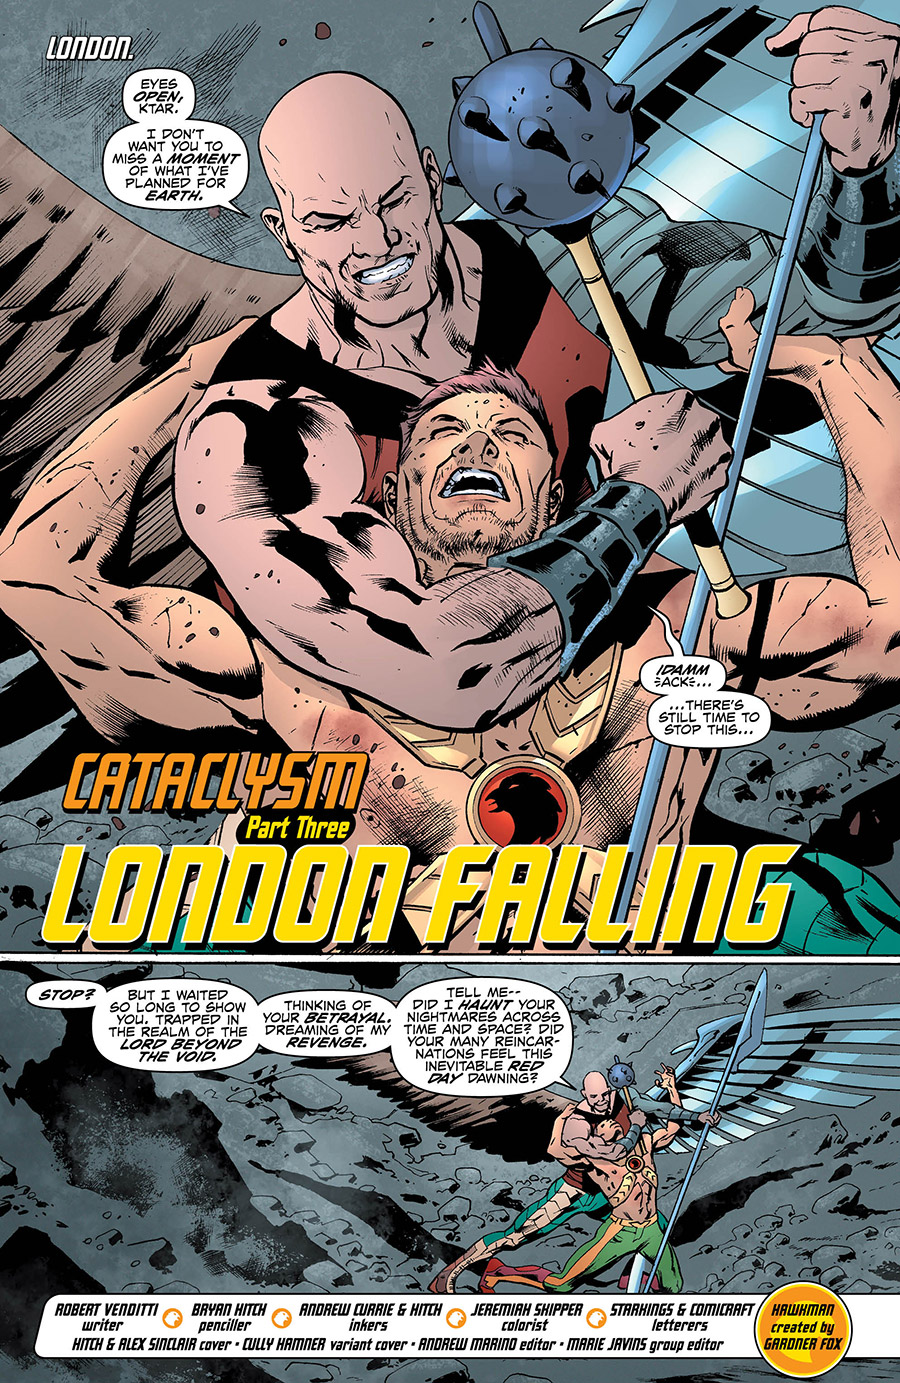 Hawkman 10_1 - DC Comics News